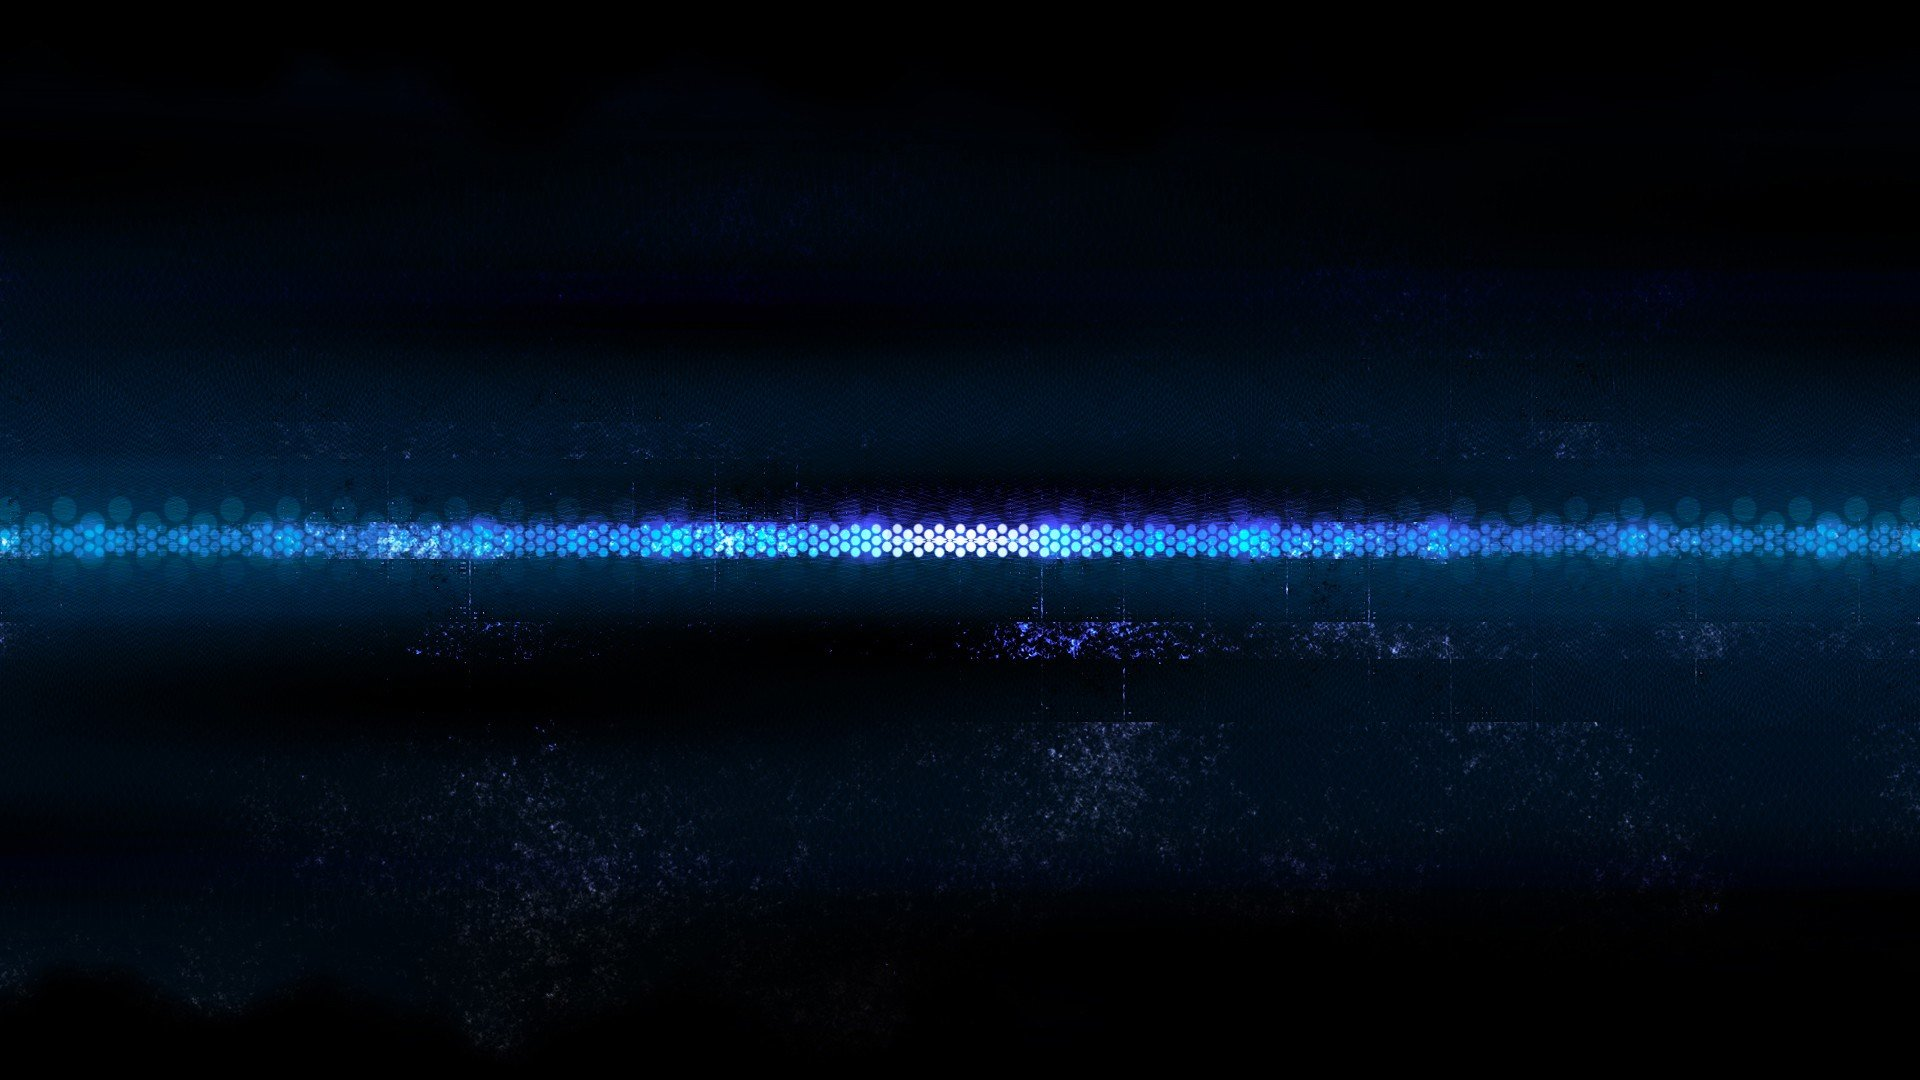 Dark Blue Background download 1920x1080